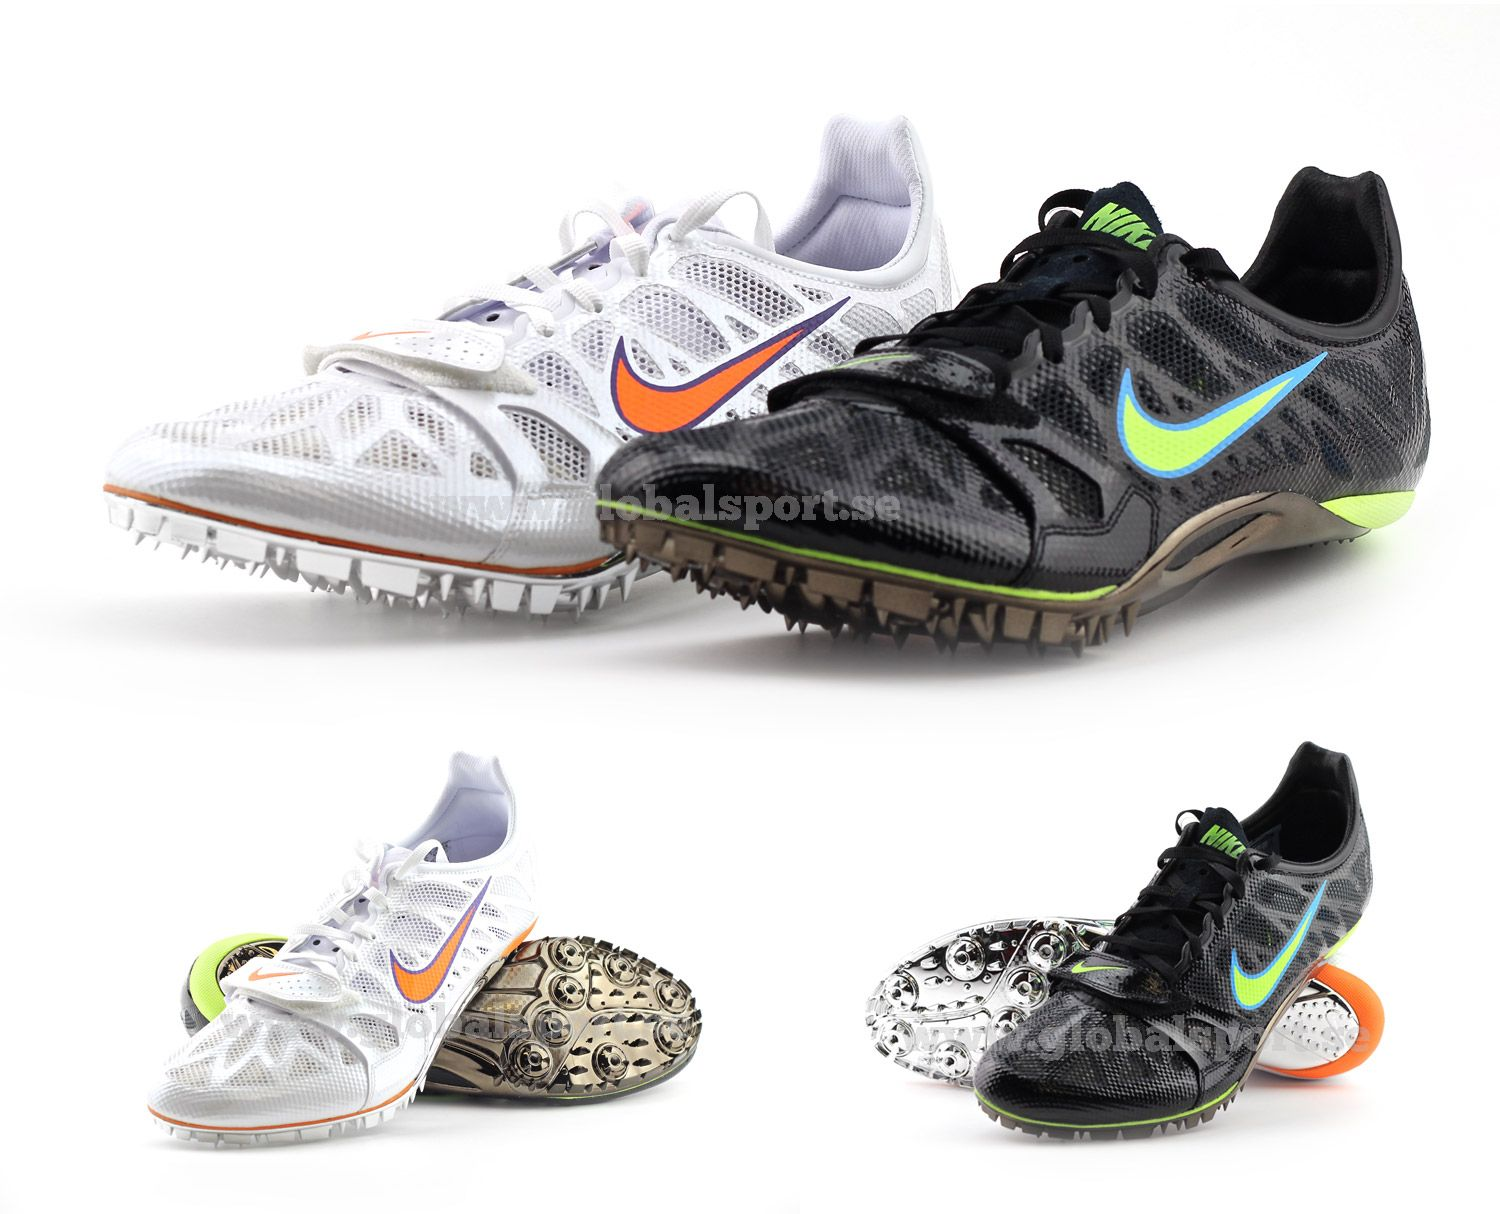 Nike Zoom Superfly R3 | For all the latest Sprint spikes news and reviews,  from